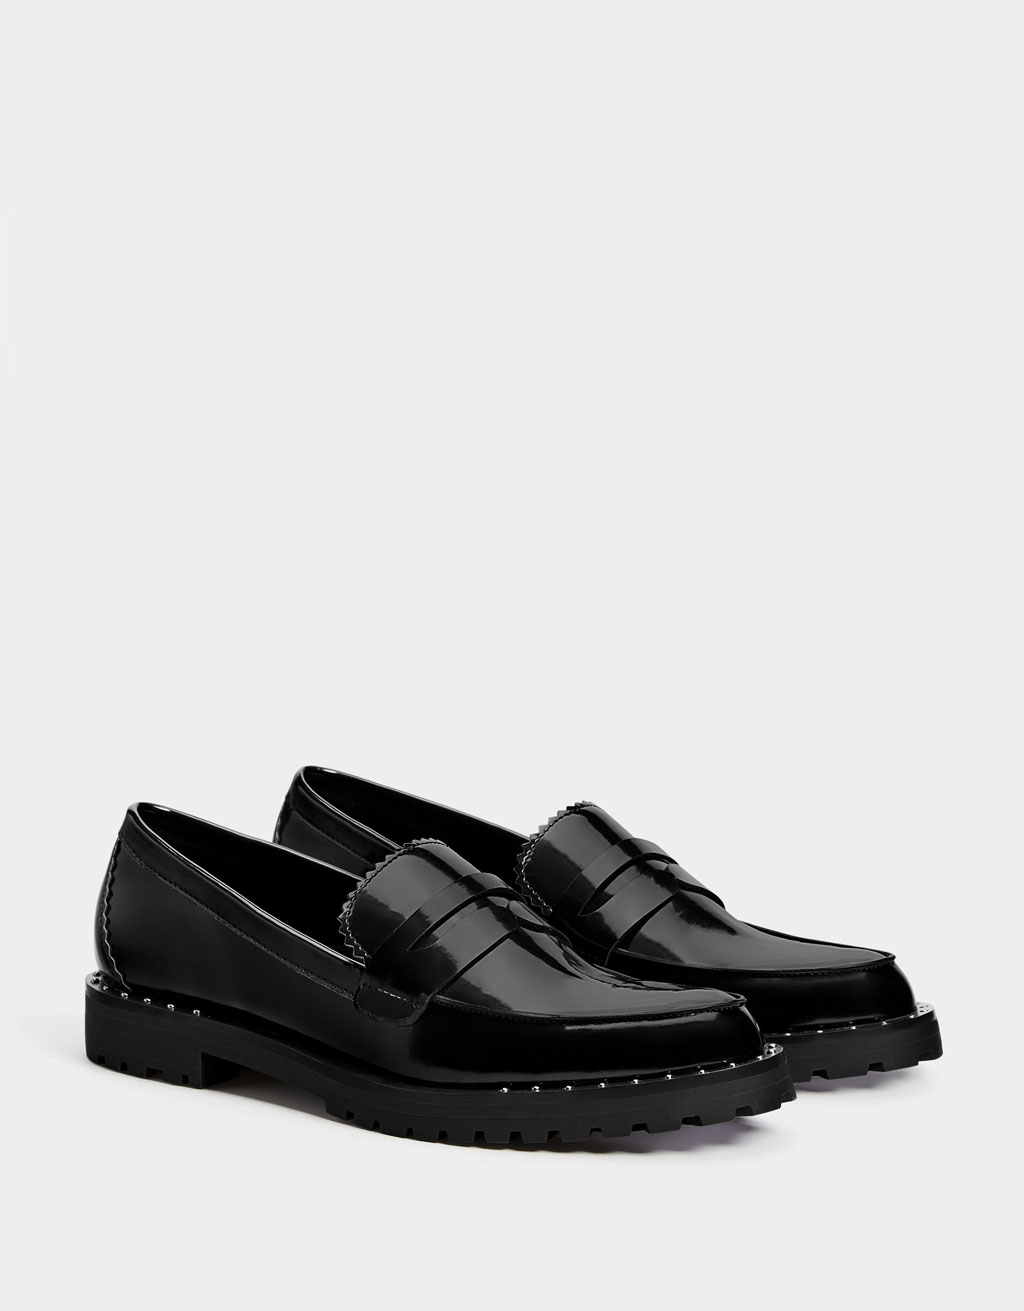 Black studded penny loafers